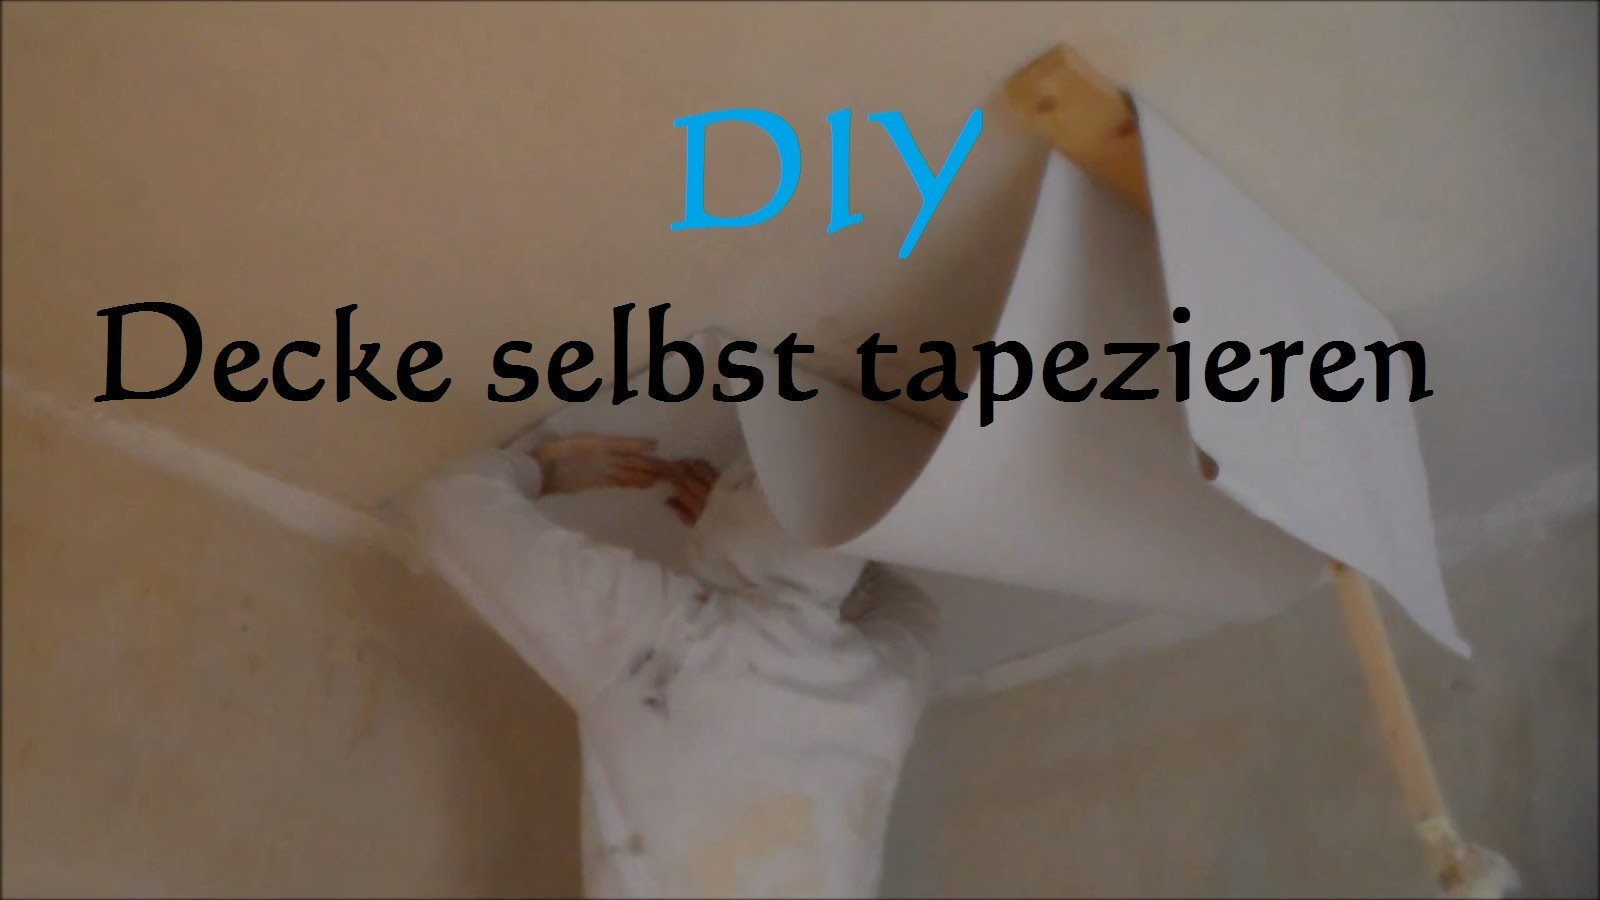 diy decke tapezieren ohne hilfe so tapeziert man eine decke anleitung decke alleine tapezieren. Black Bedroom Furniture Sets. Home Design Ideas